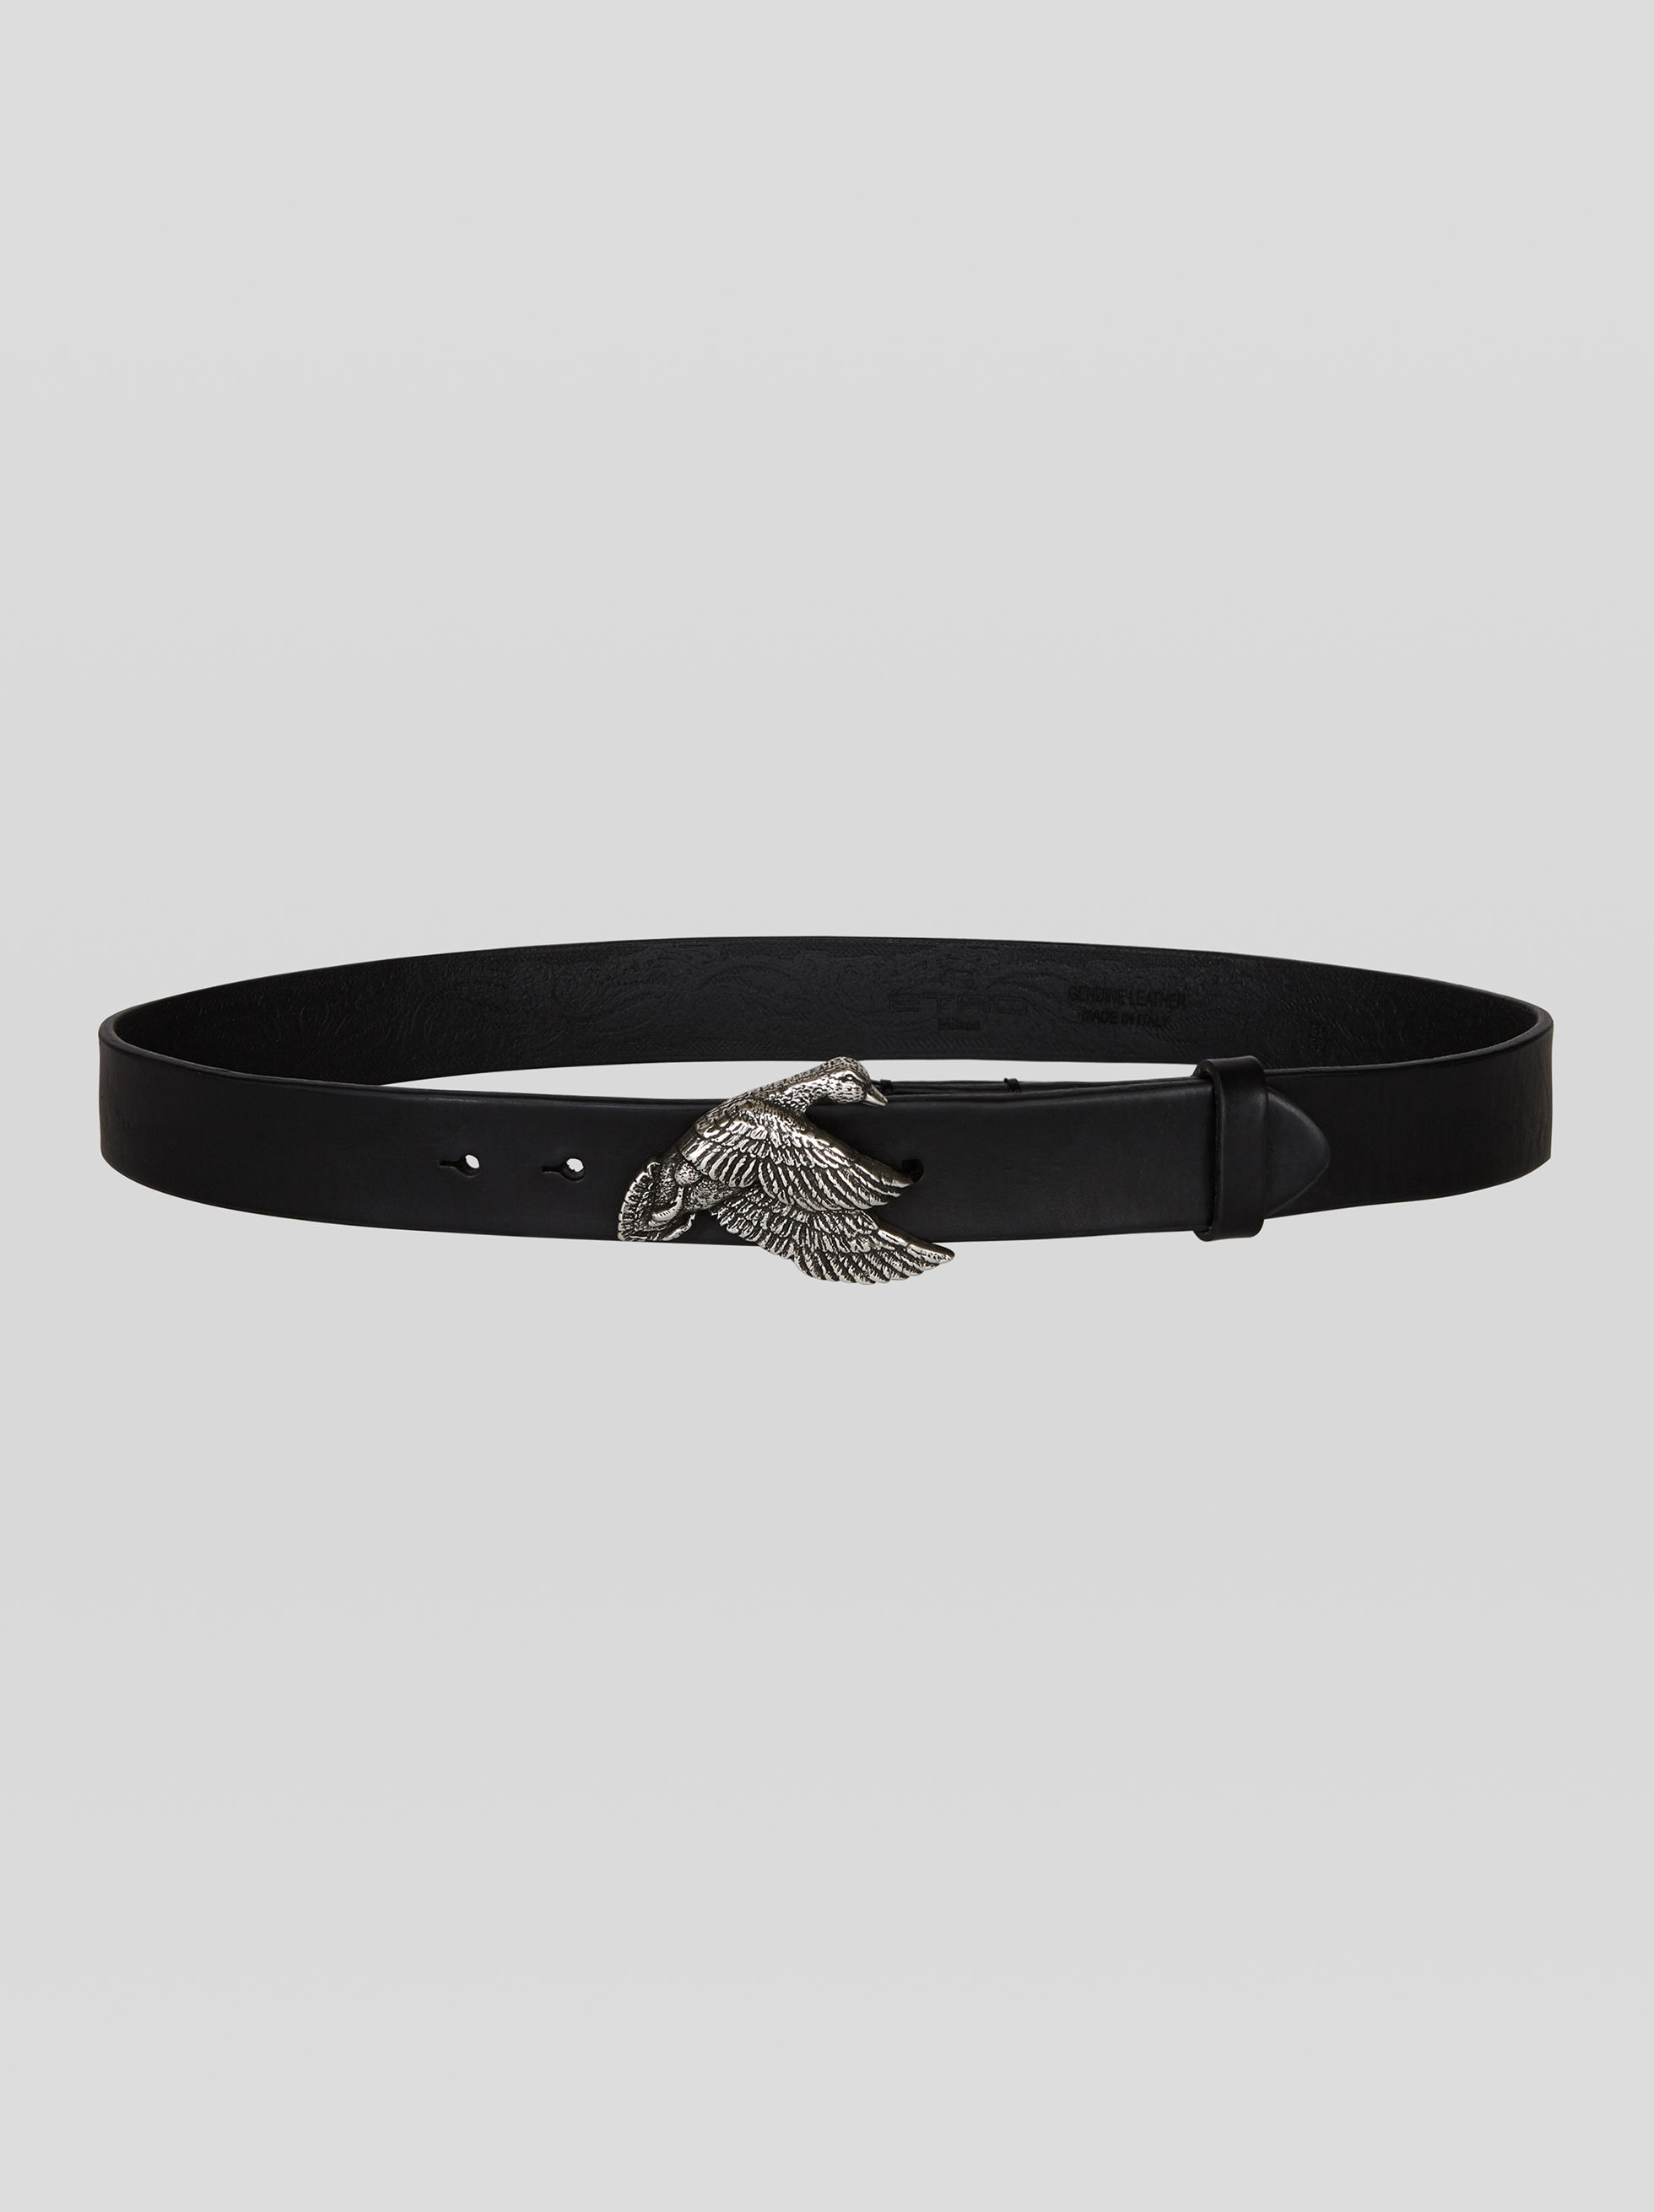 LEATHER BELT WITH DUCK BUCKLE